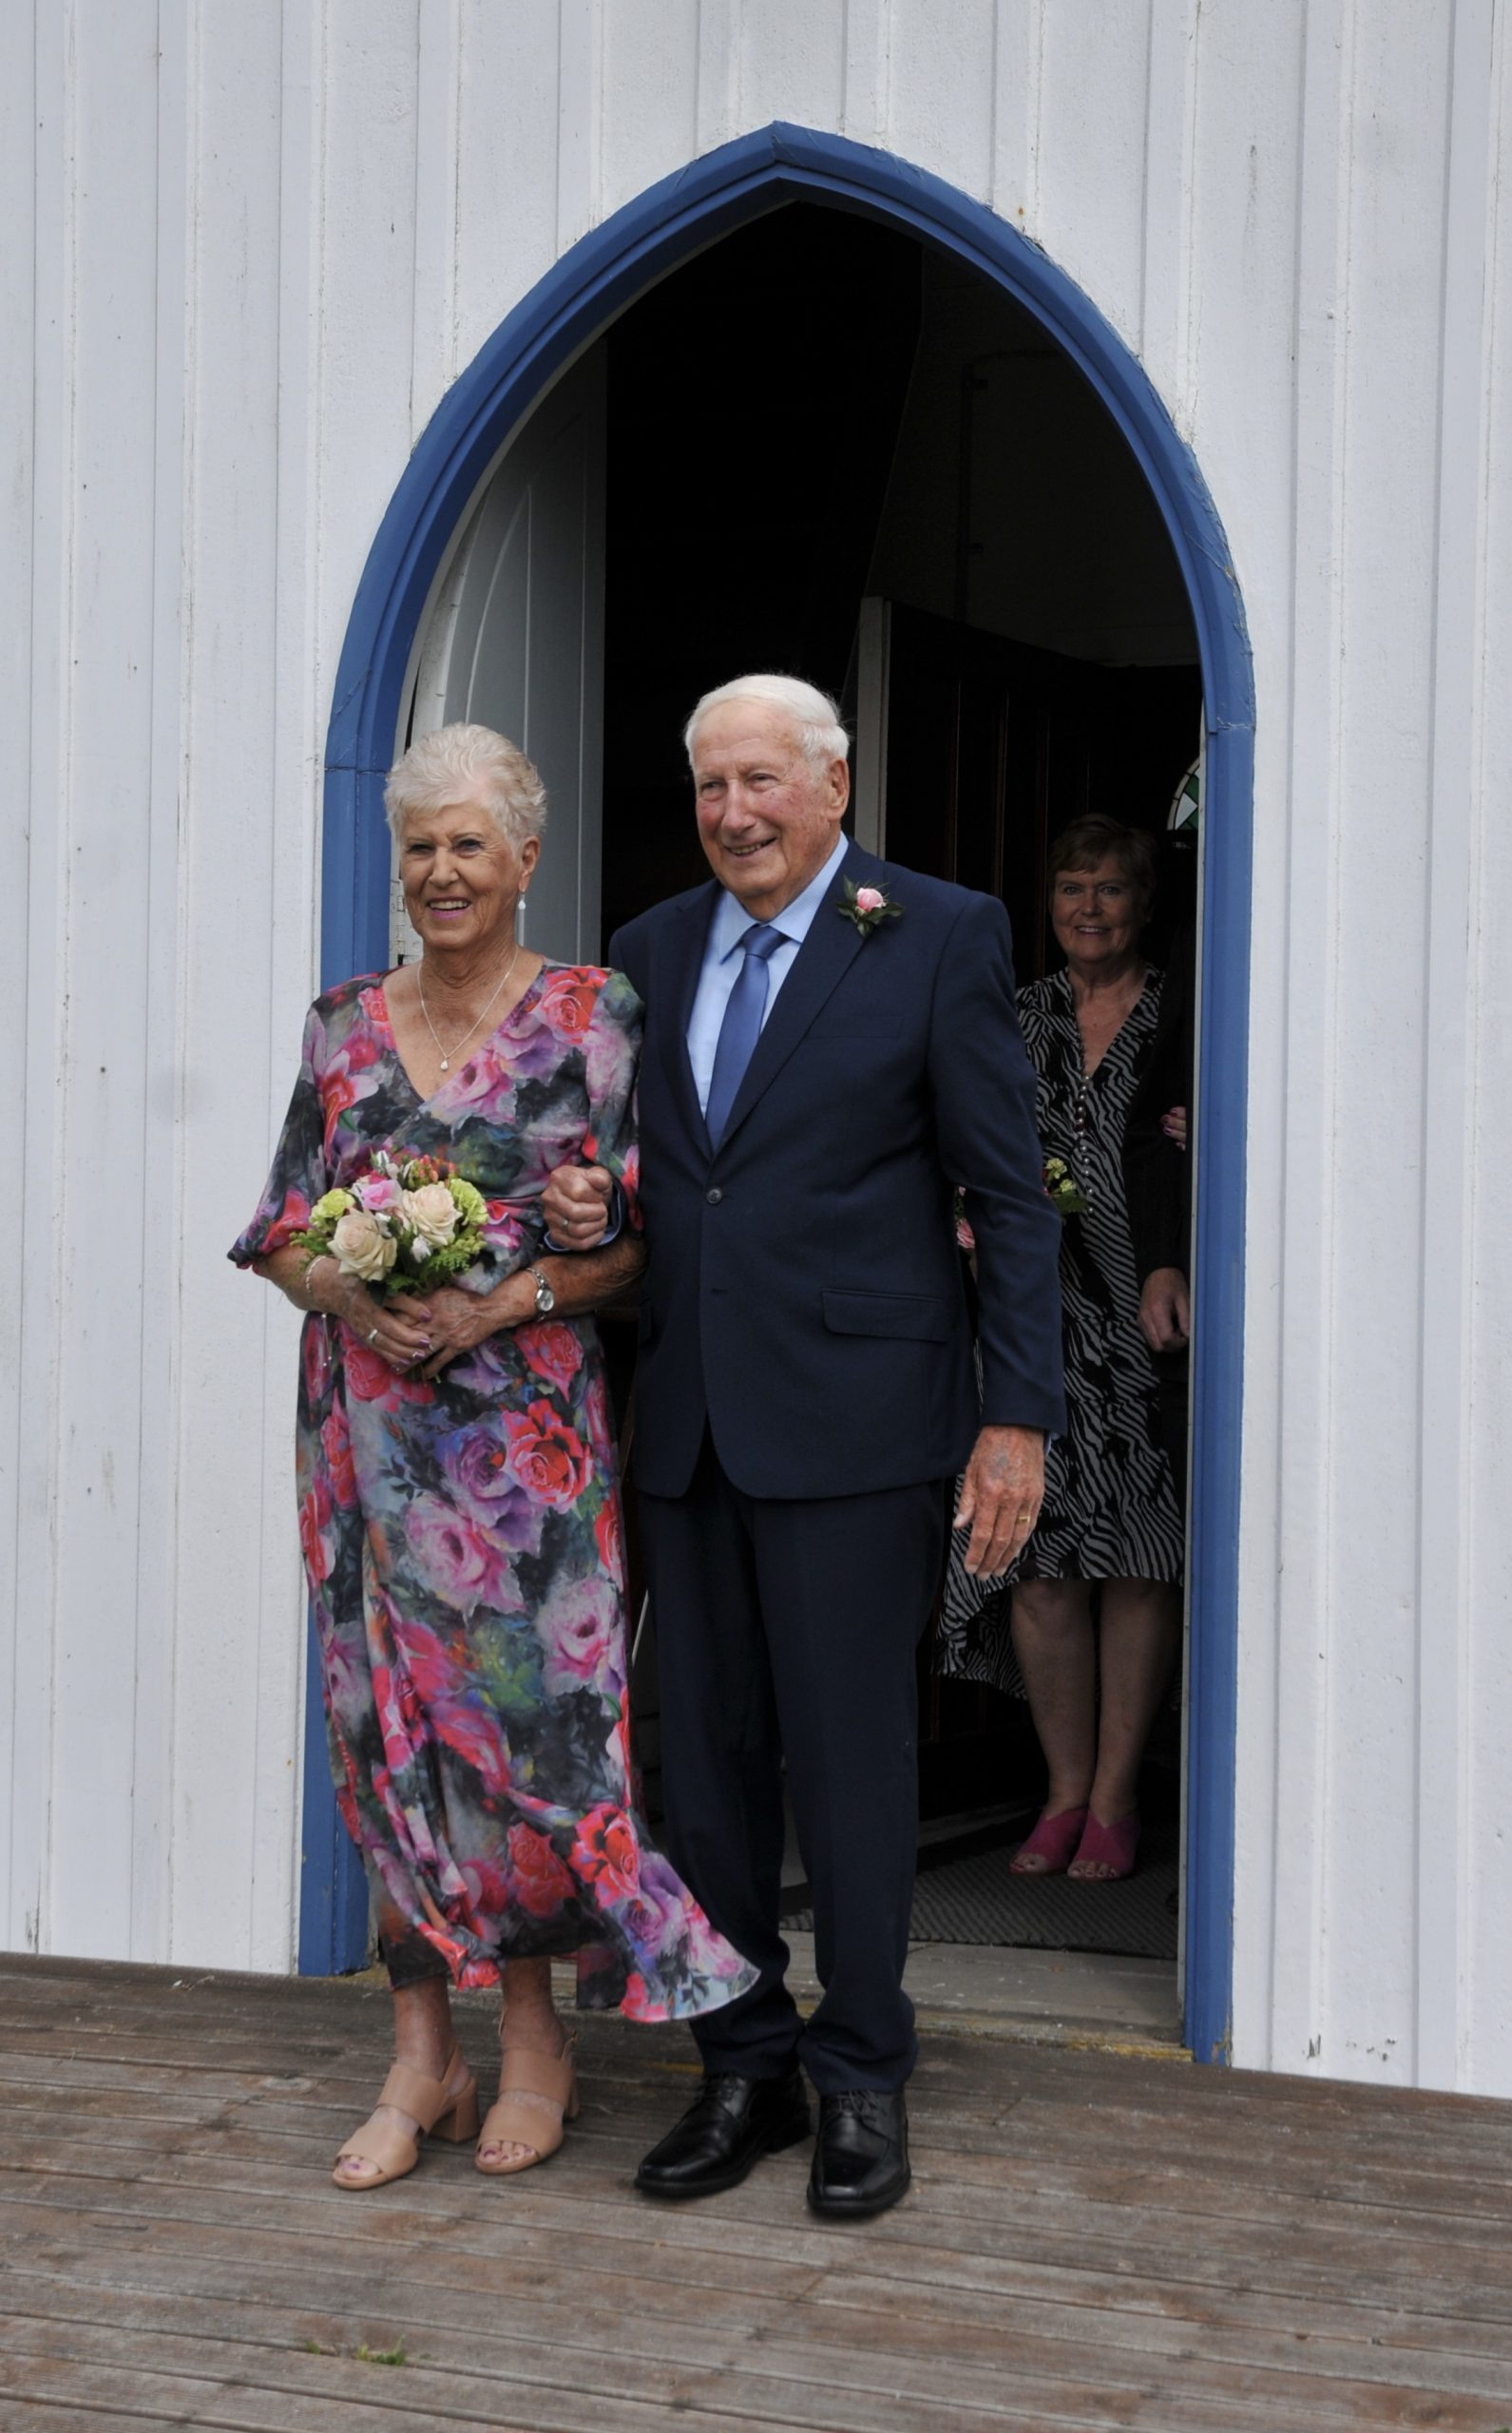 Thelma and Brian Smith step out of the historic St Stephen's Church in Tuahiwi last Saturday...